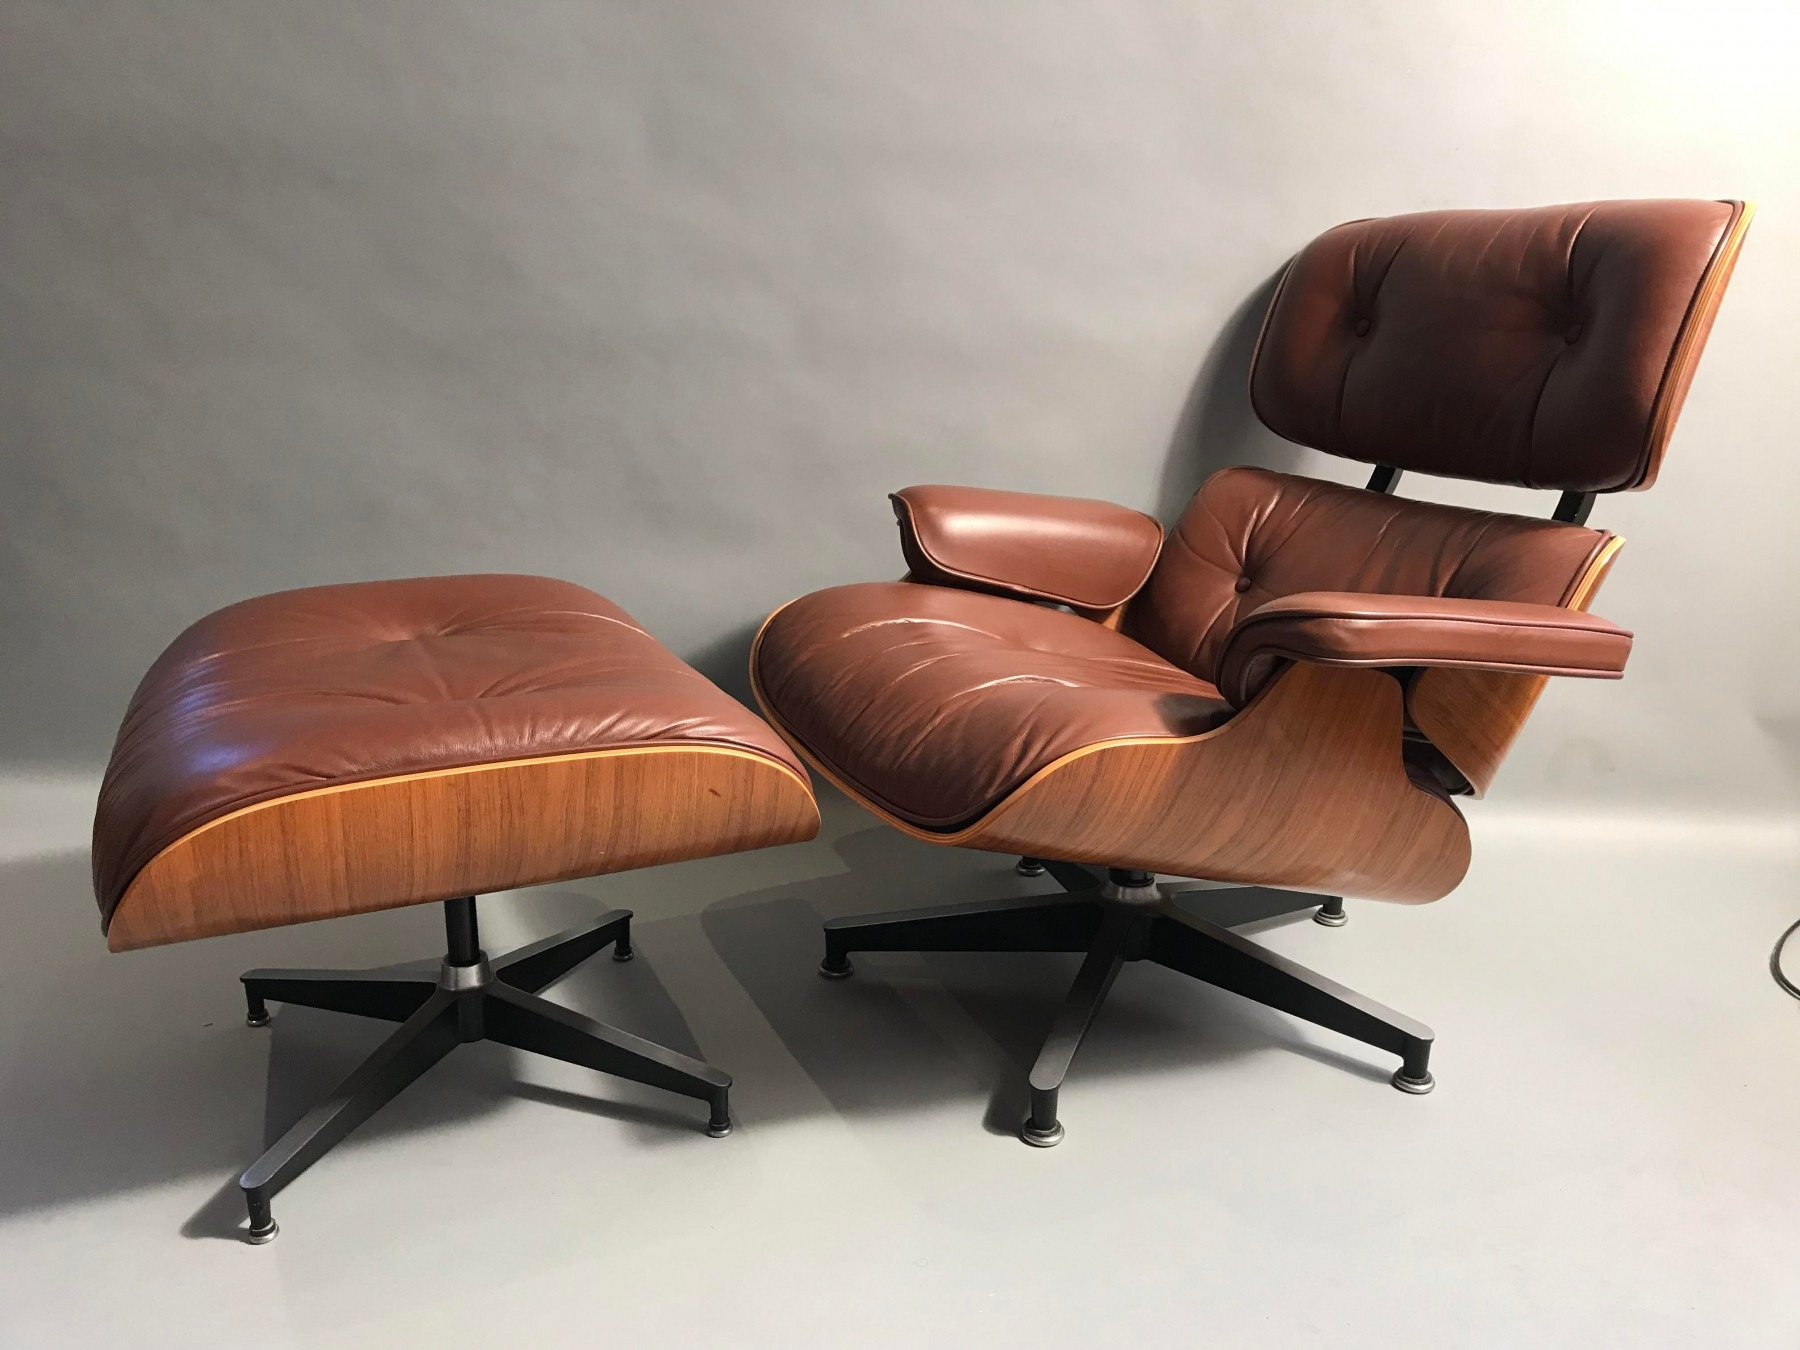 Fabulous The Best Online Sites To Buy Gently Used Designer Furniture Pdpeps Interior Chair Design Pdpepsorg